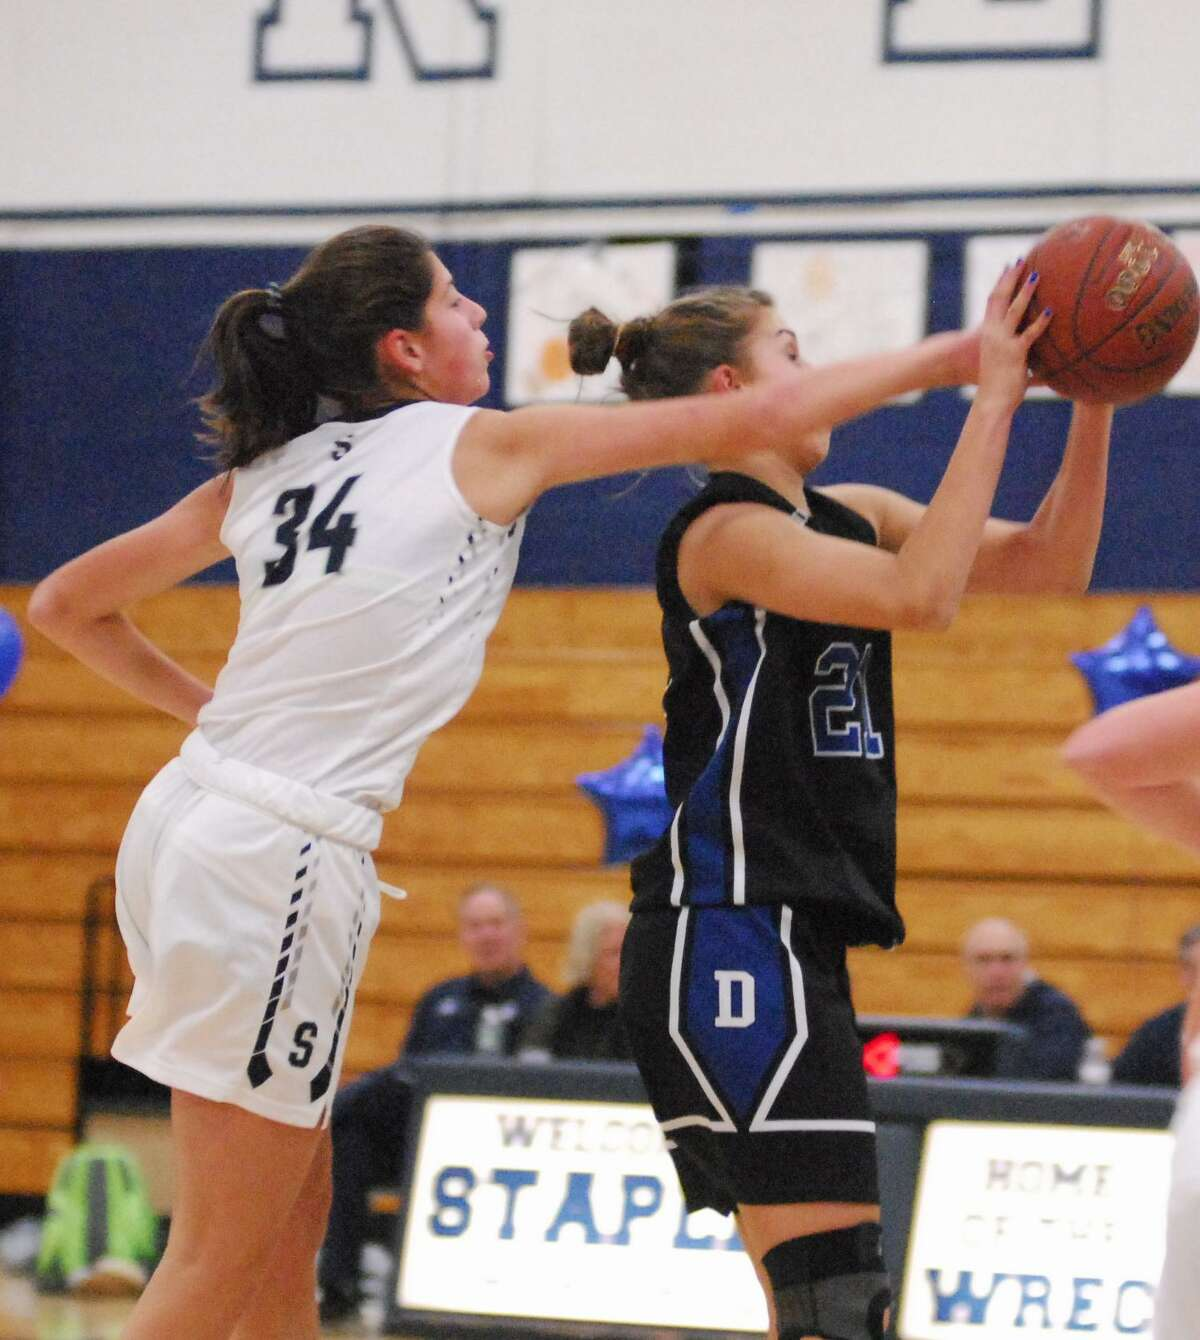 Darien's Christine Fiore, right, catches the ball while Staples' Arianna Gerig defends during a game on Tuesday. Fiore scored 28 points as the Blue Wave won 63-52.